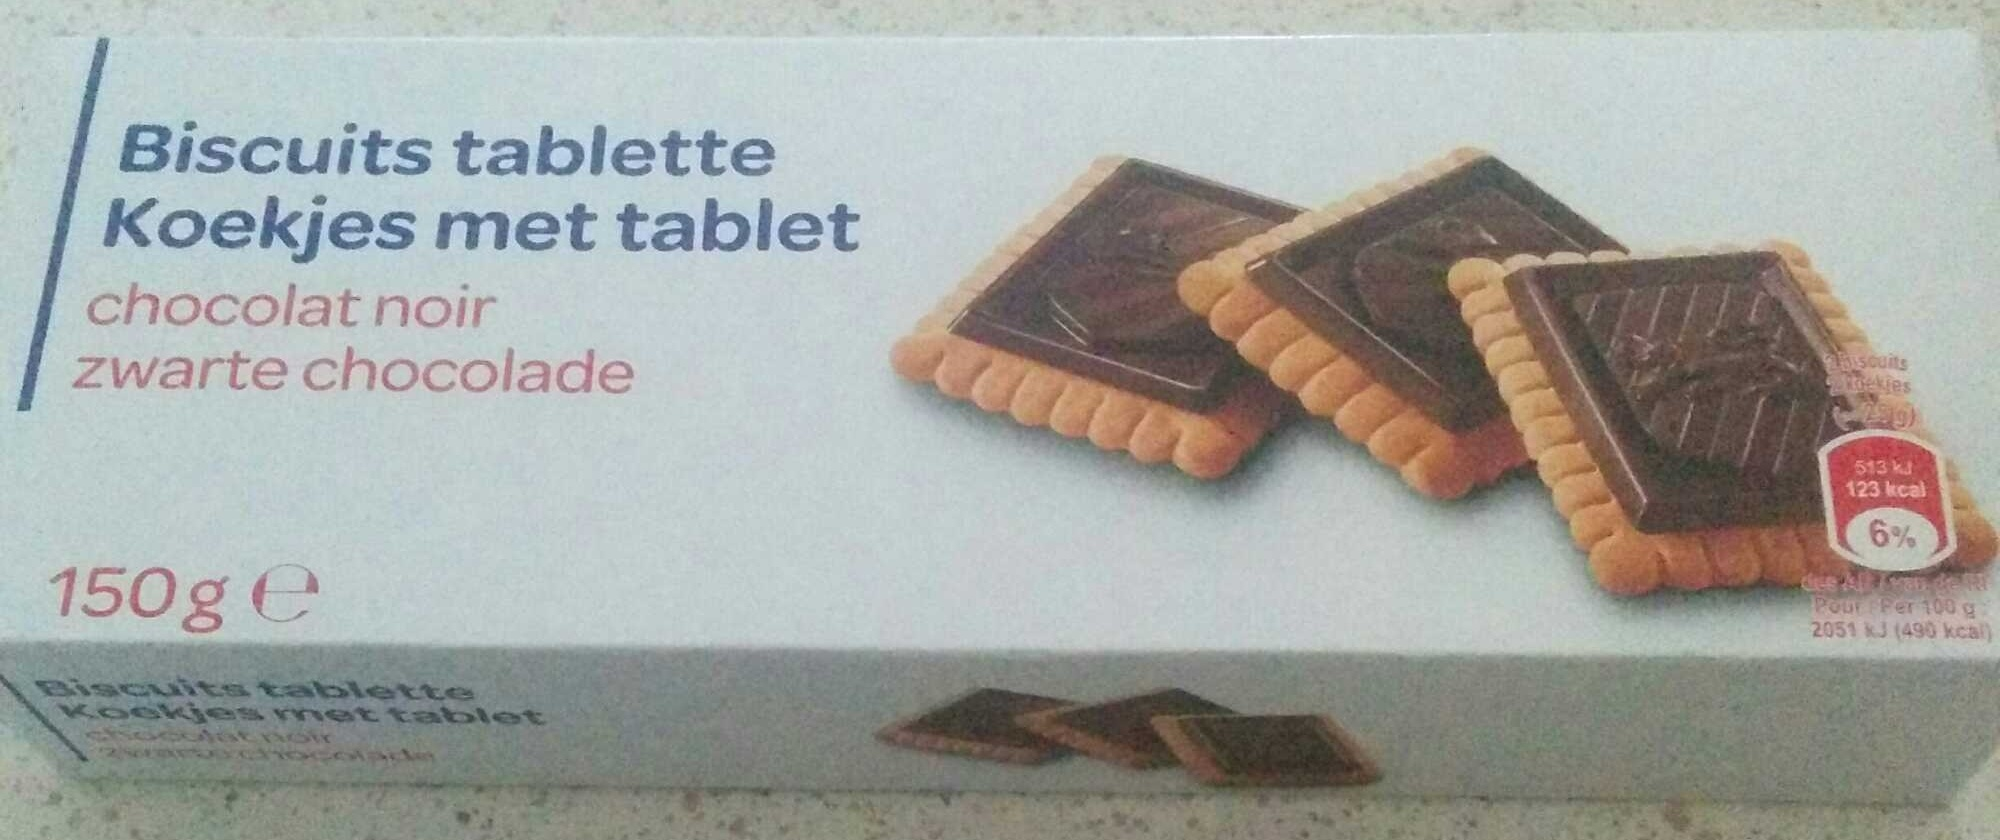 Biscuit tablette - Producto - fr